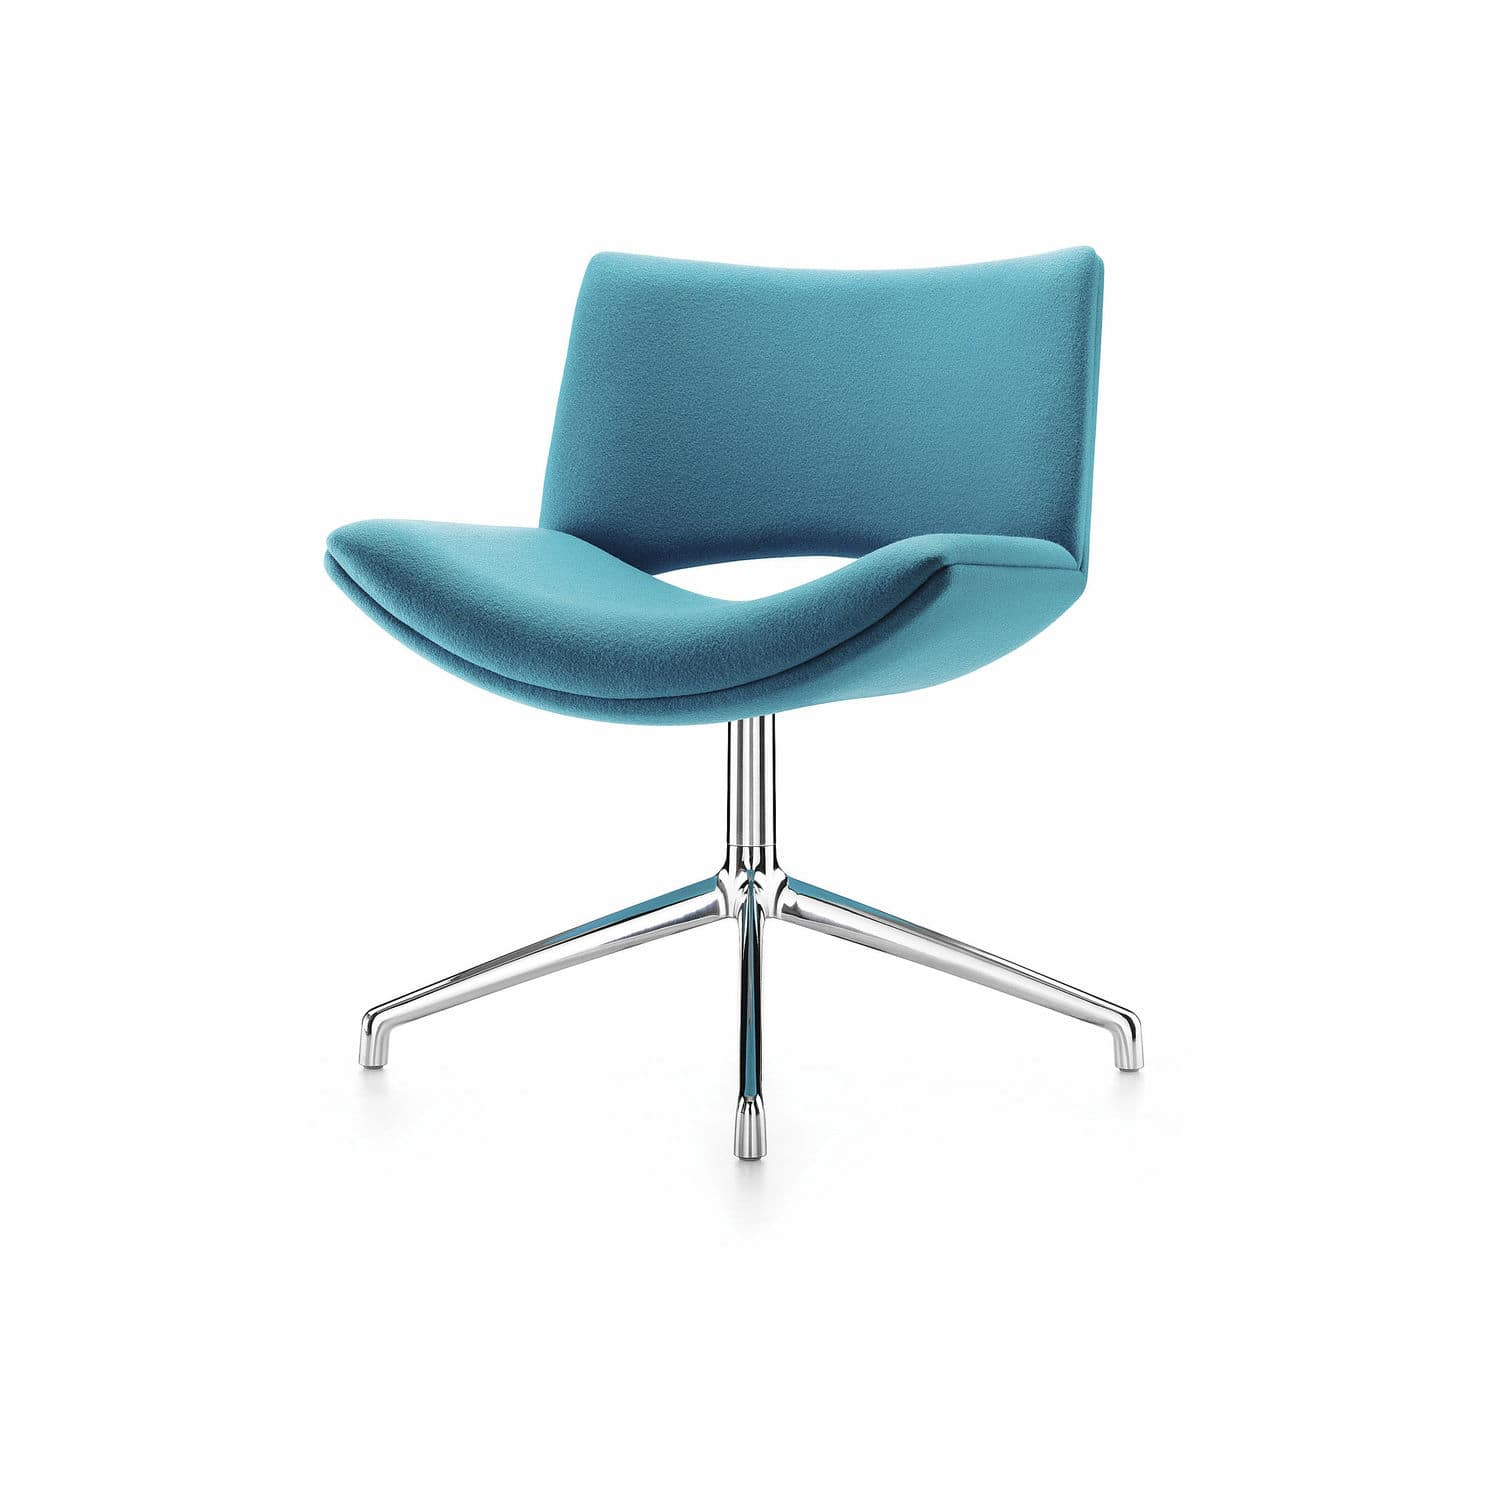 Contemporary Visitor Chair / Upholstered / Star Base / Swivel Pertaining To Chill Swivel Chairs With Metal Base (Image 15 of 25)